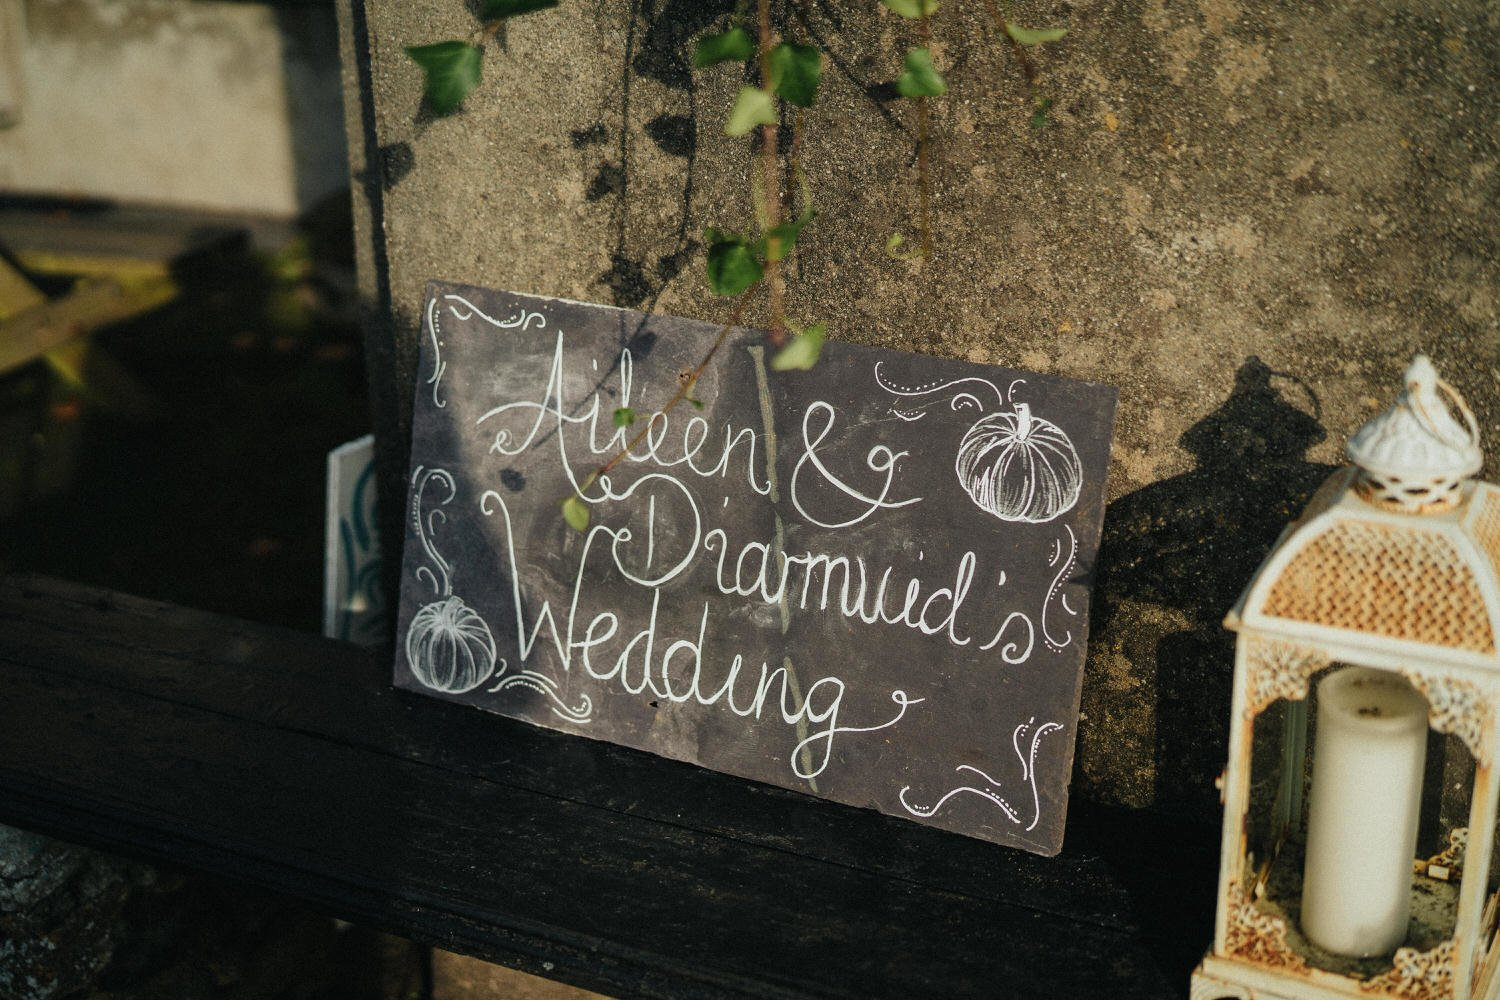 Aileen & Diarmuid relaxed wedding day at Ballintaggart House - Dingle wedding 7